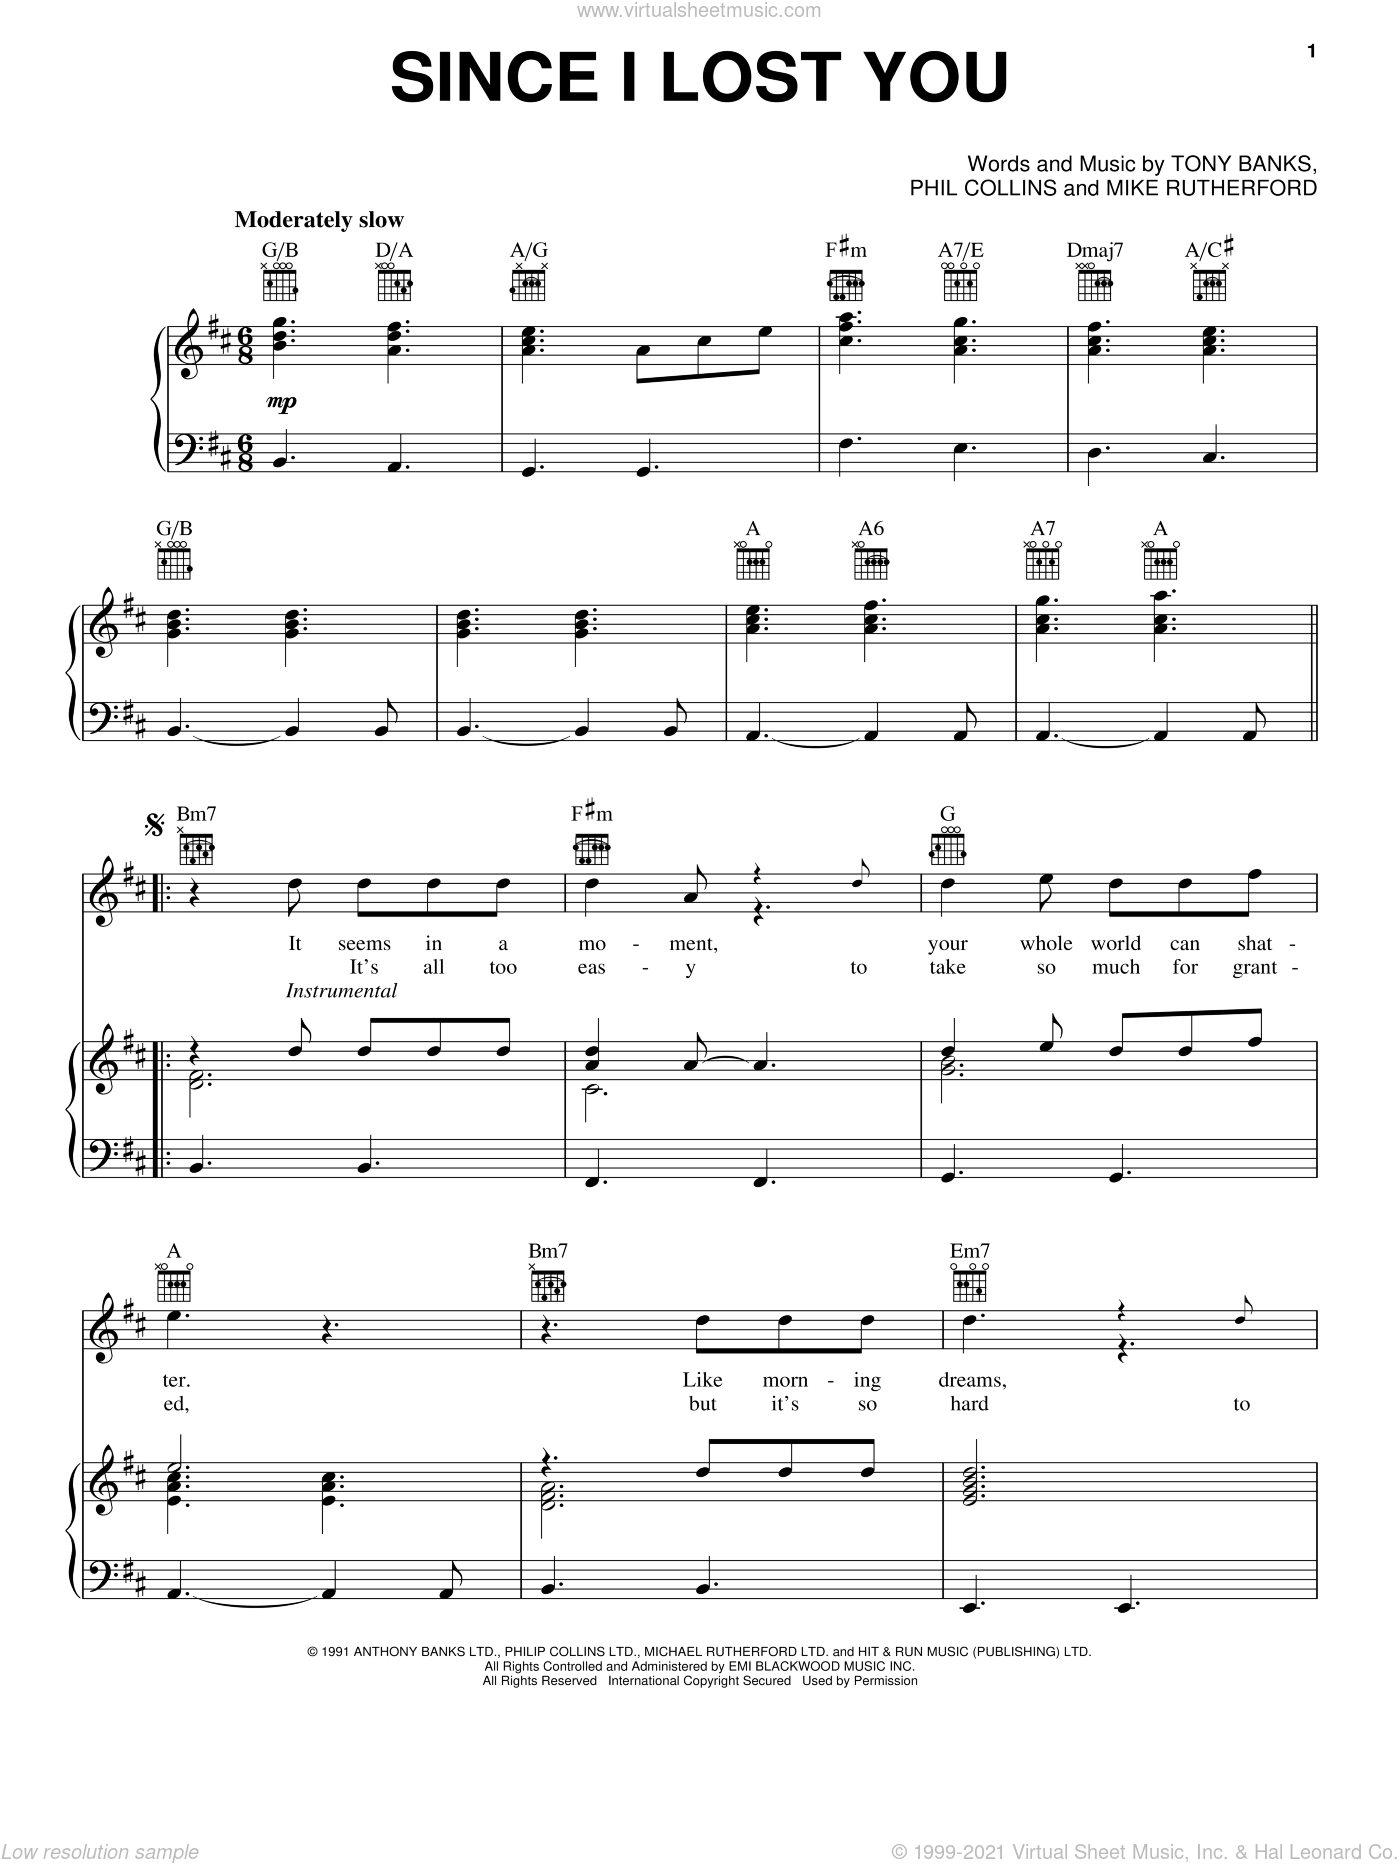 Since I Lost You sheet music for voice, piano or guitar by Genesis, Mike Rutherford, Phil Collins and Tony Banks, intermediate skill level